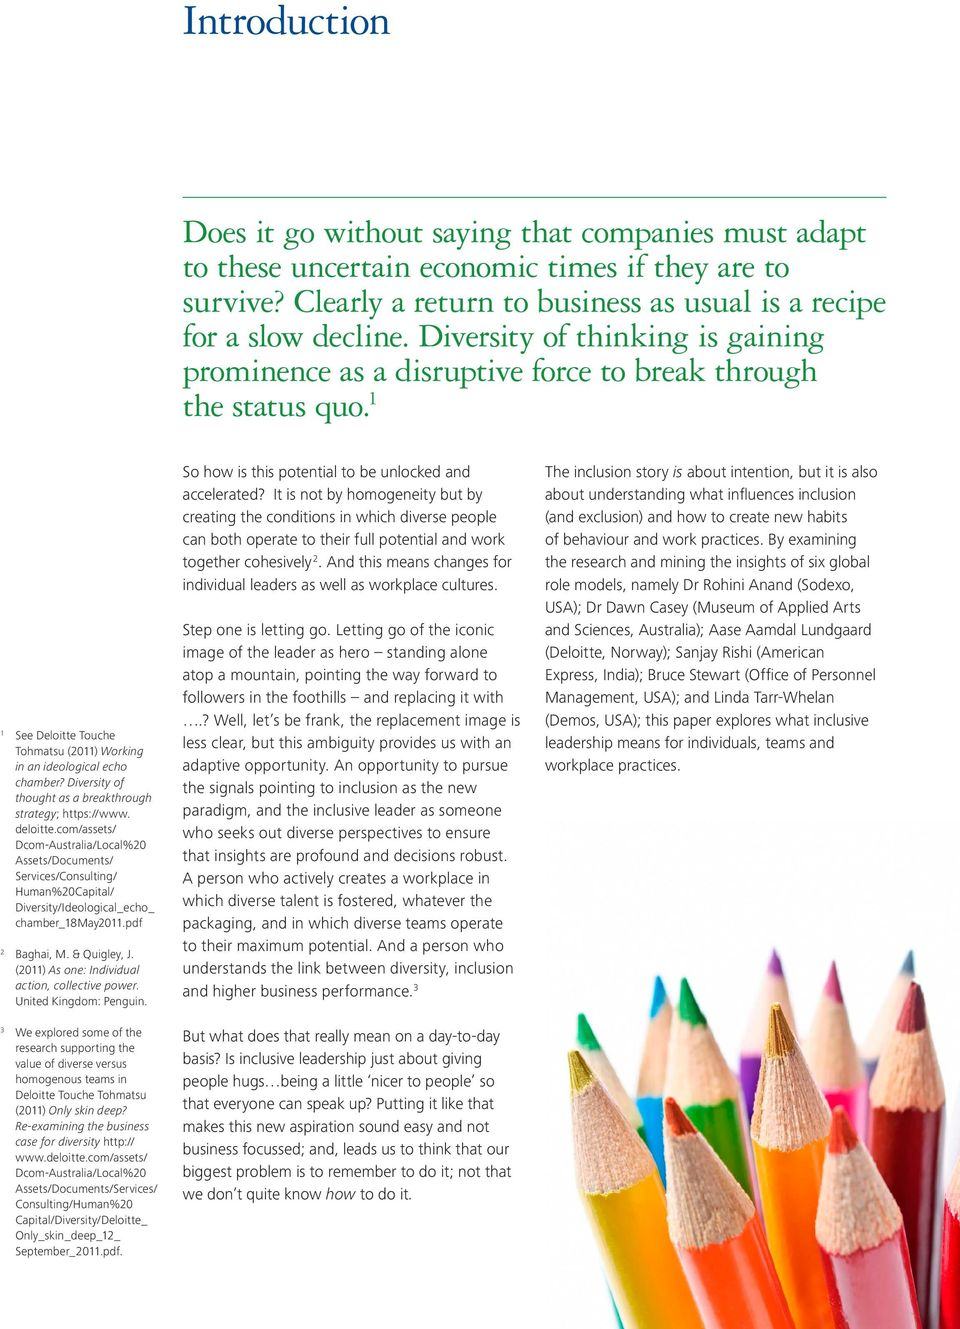 Diversity of thought as a breakthrough strategy; https://www. deloitte.